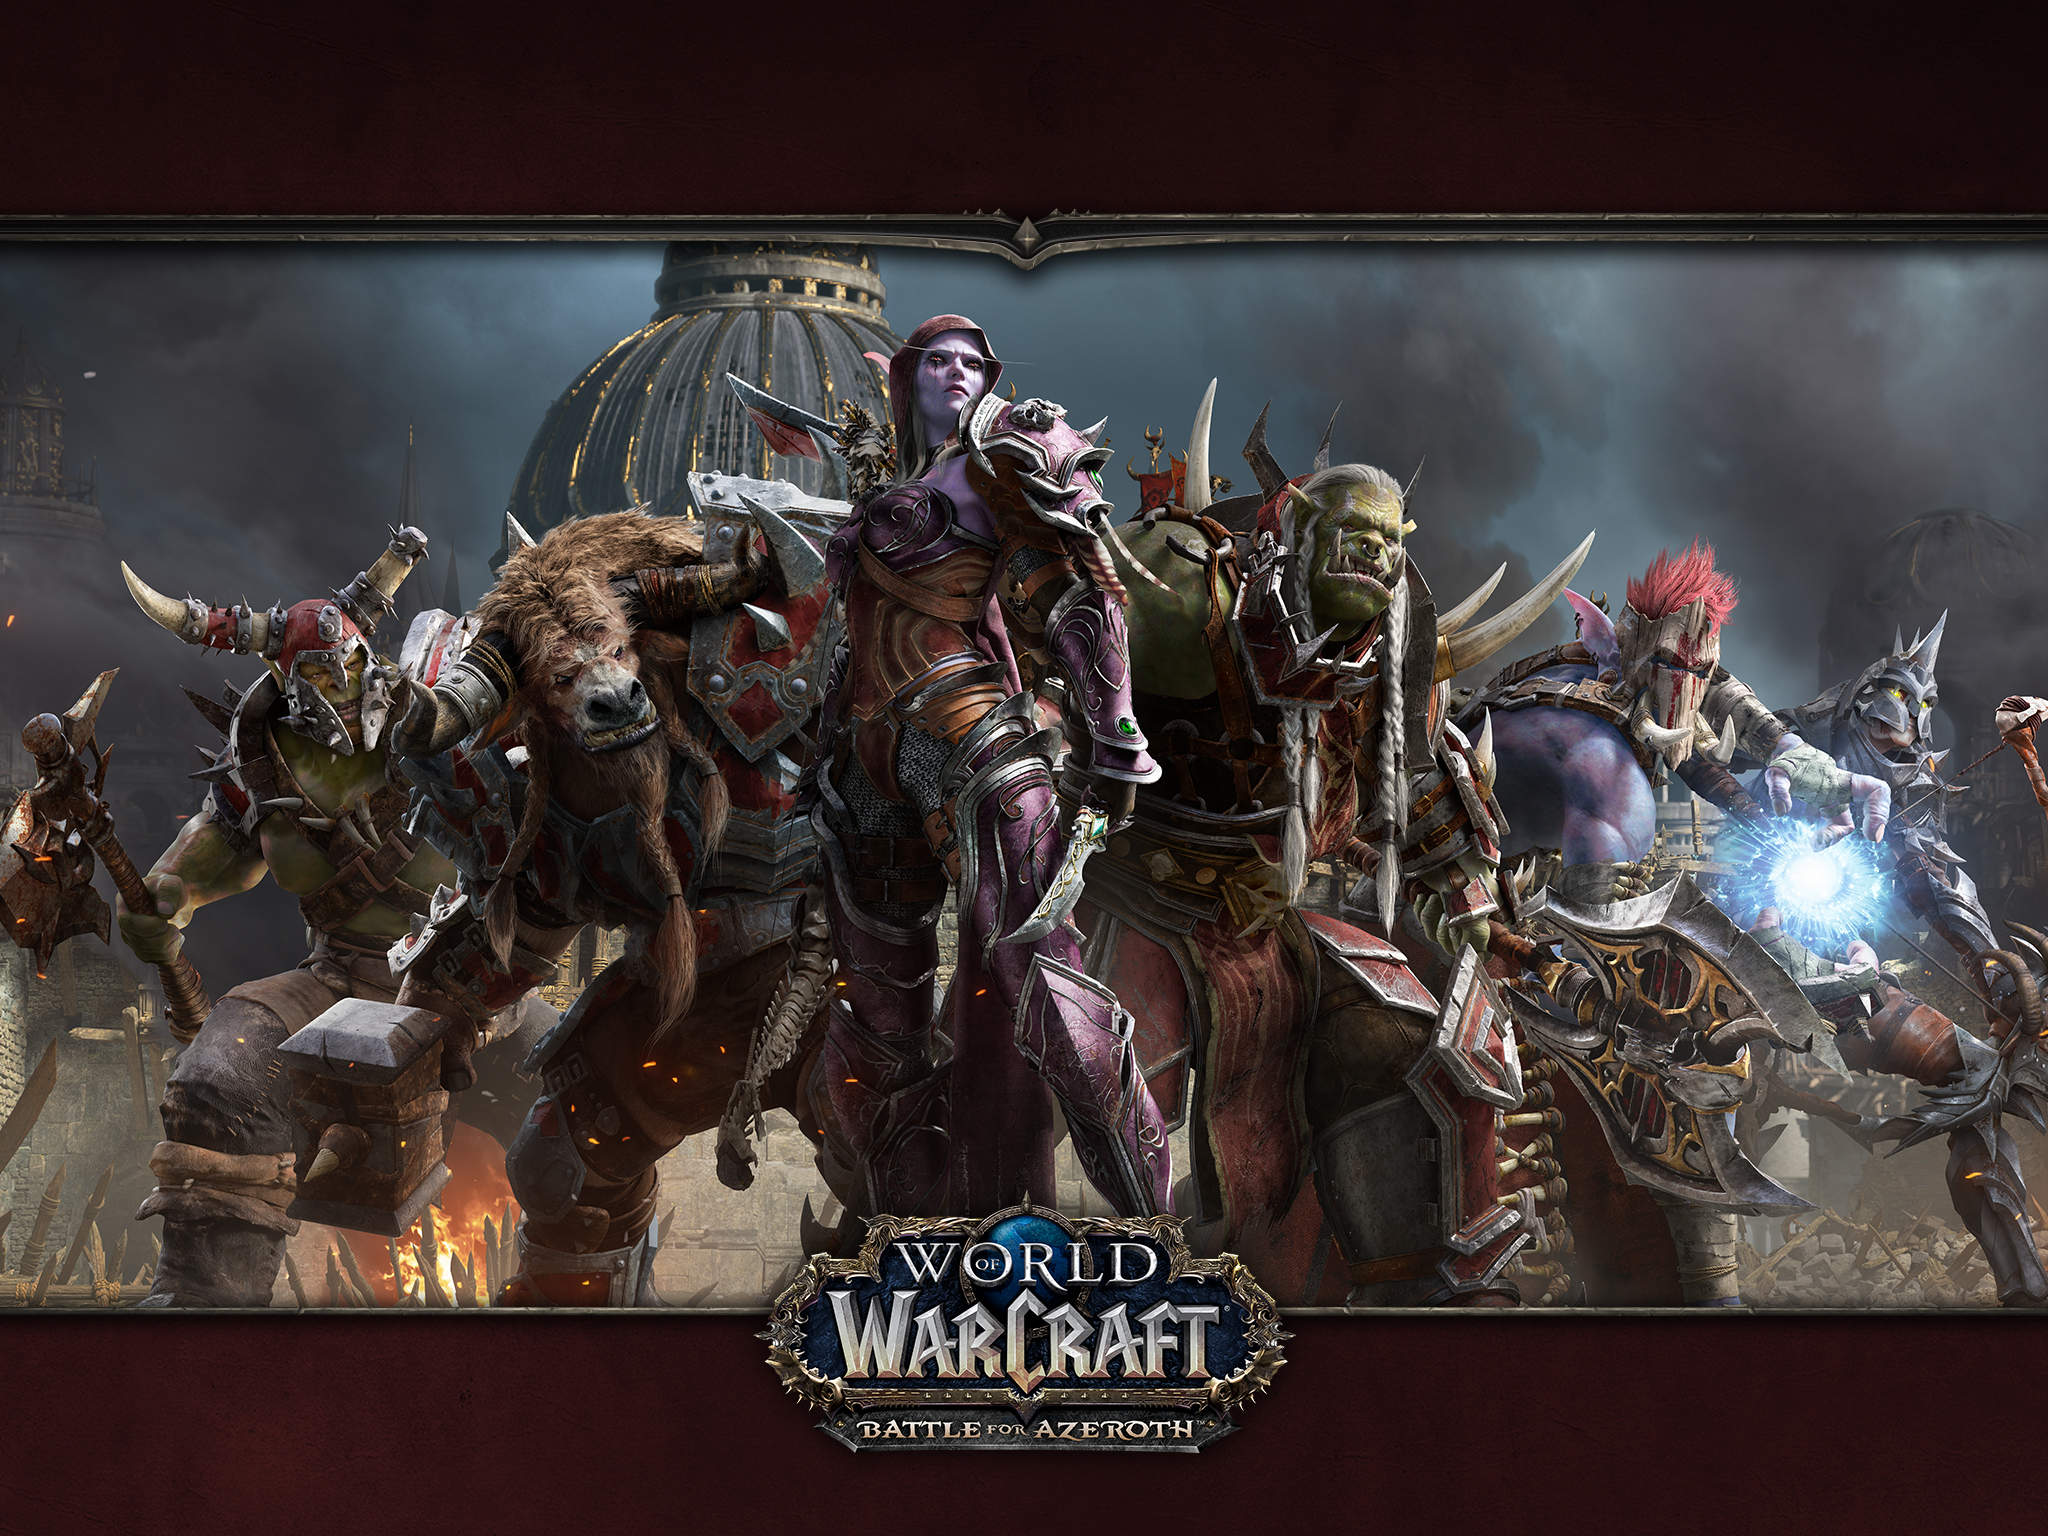 world of warcraft wallpaper  Battle for Azeroth - Media - WoW